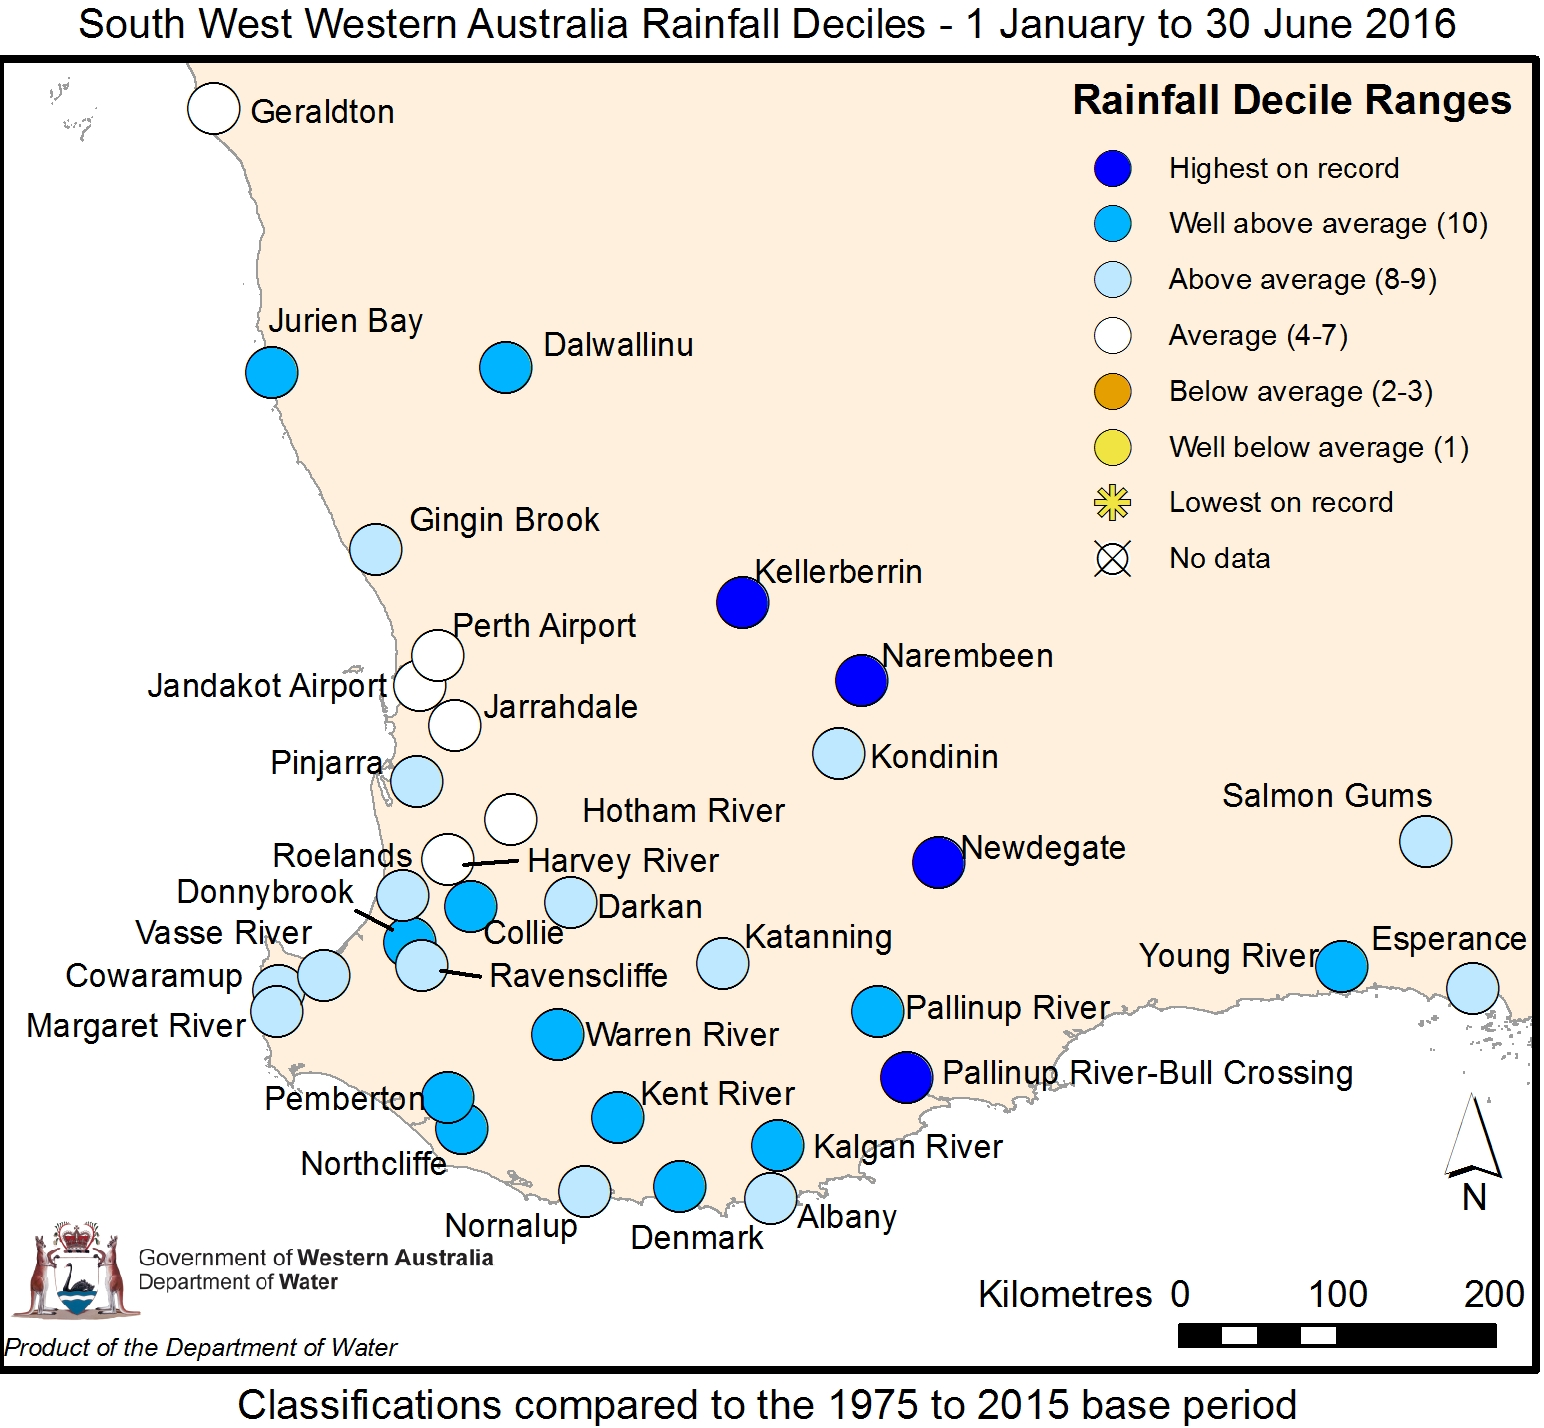 Year to date rainfall